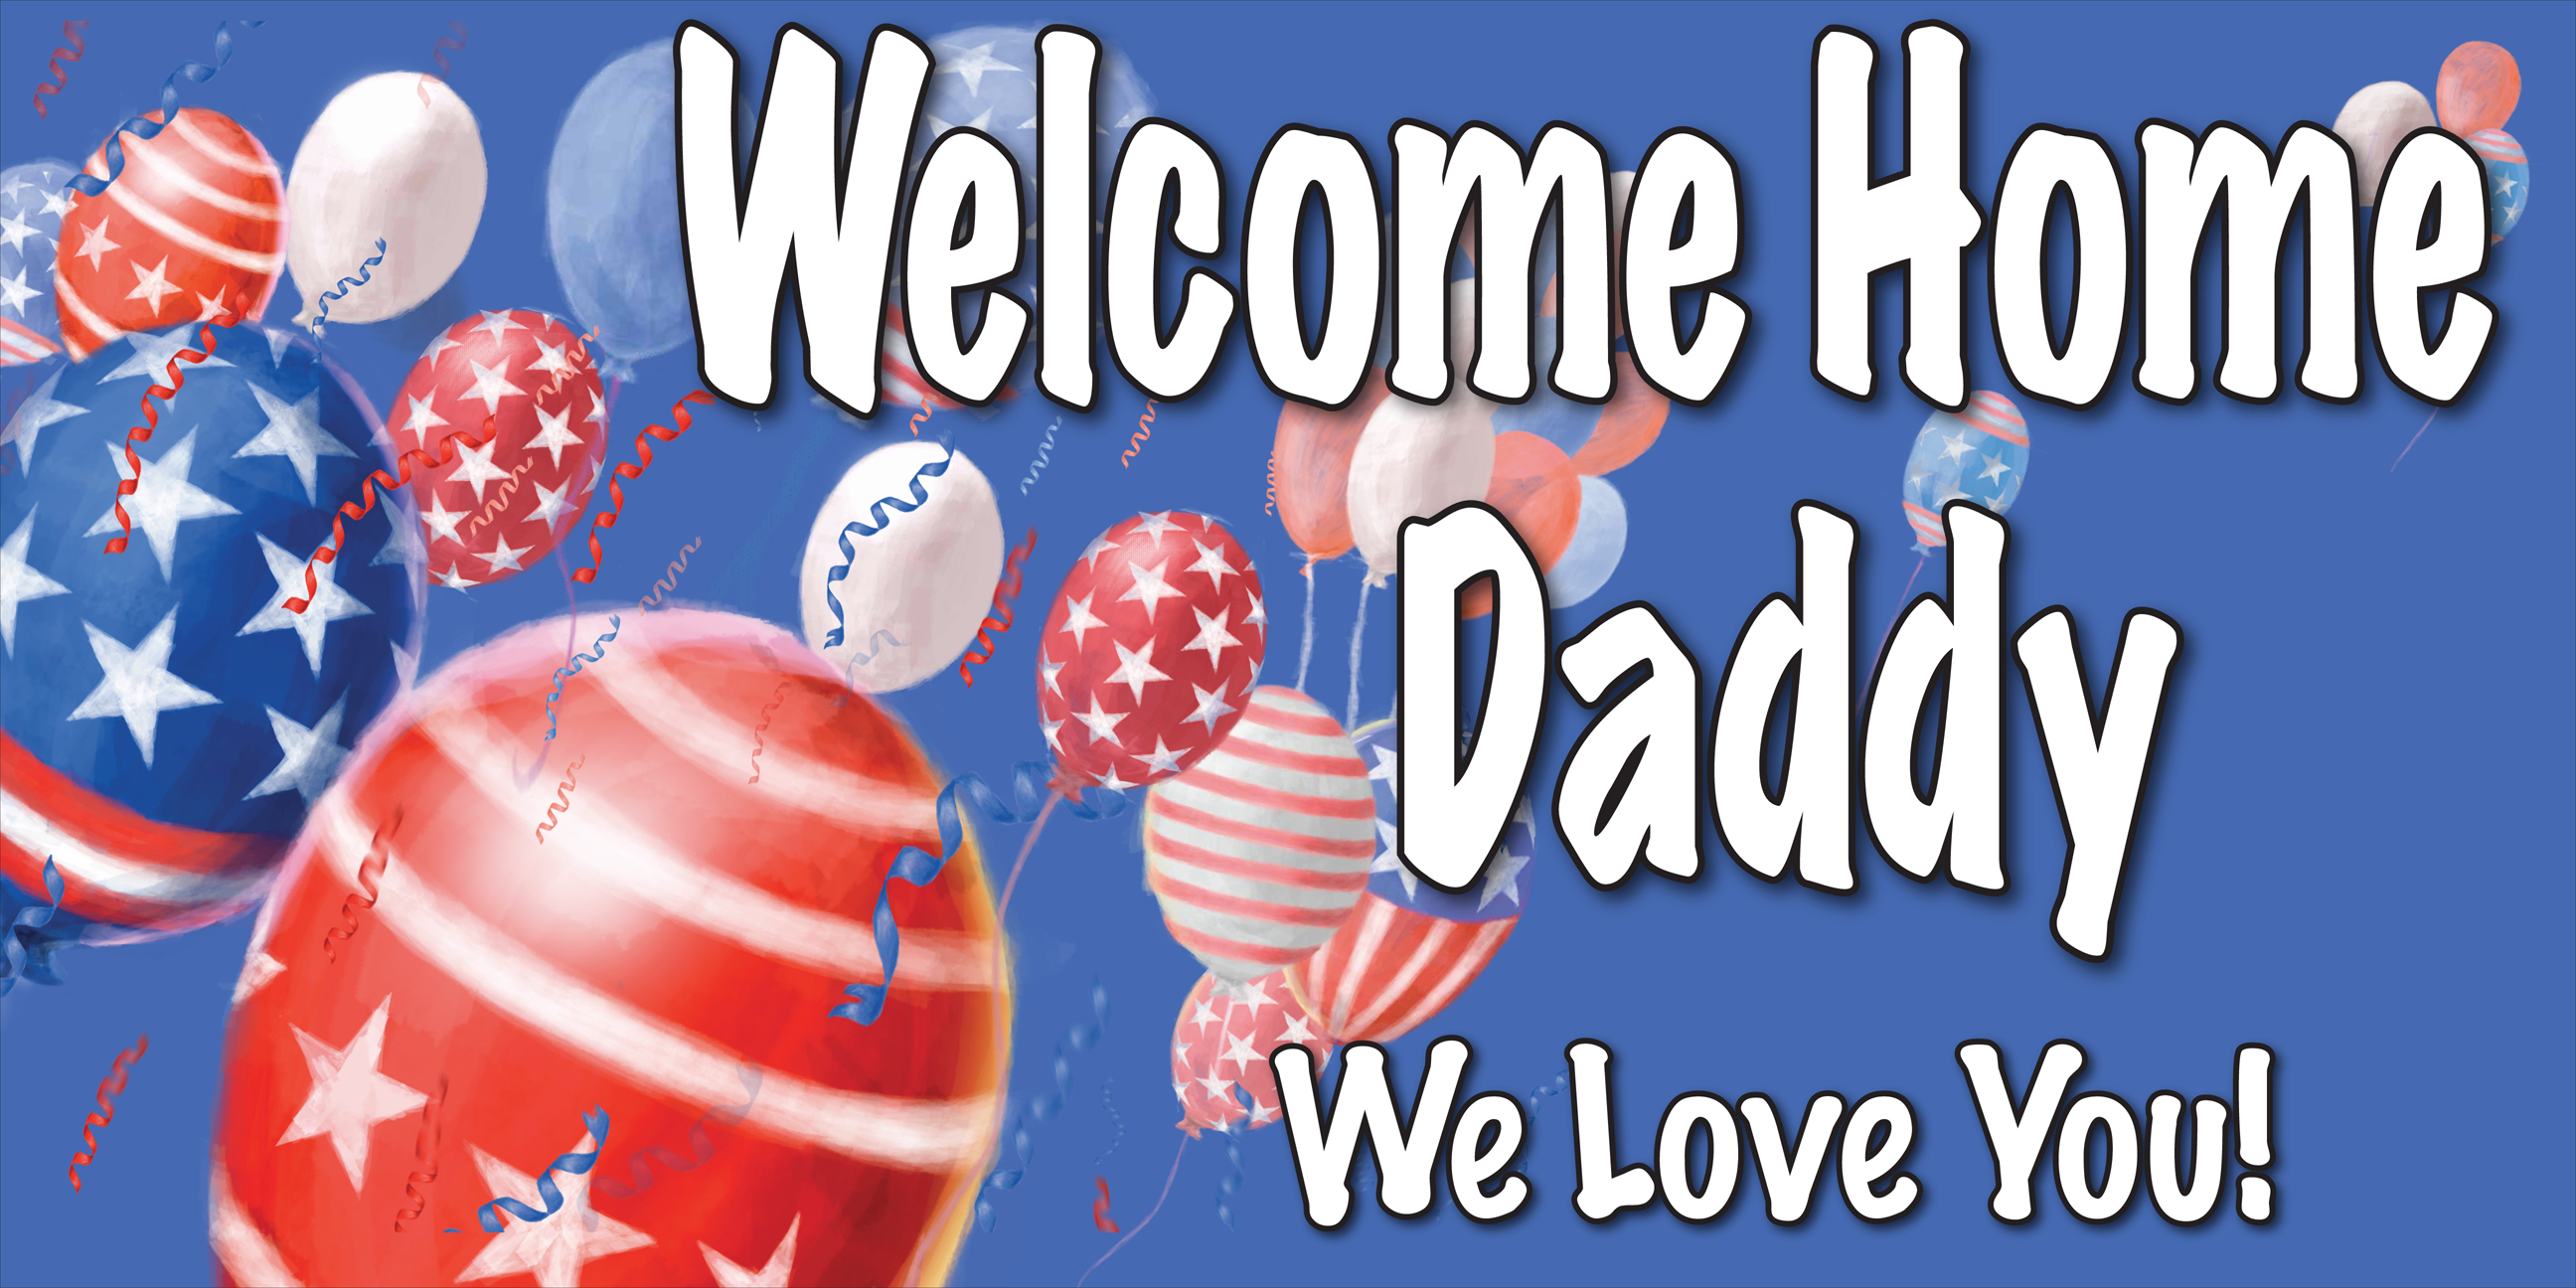 Welcome Home Cards Free Printable | Welcome Home Banners Style #5 - Welcome Home Cards Free Printable